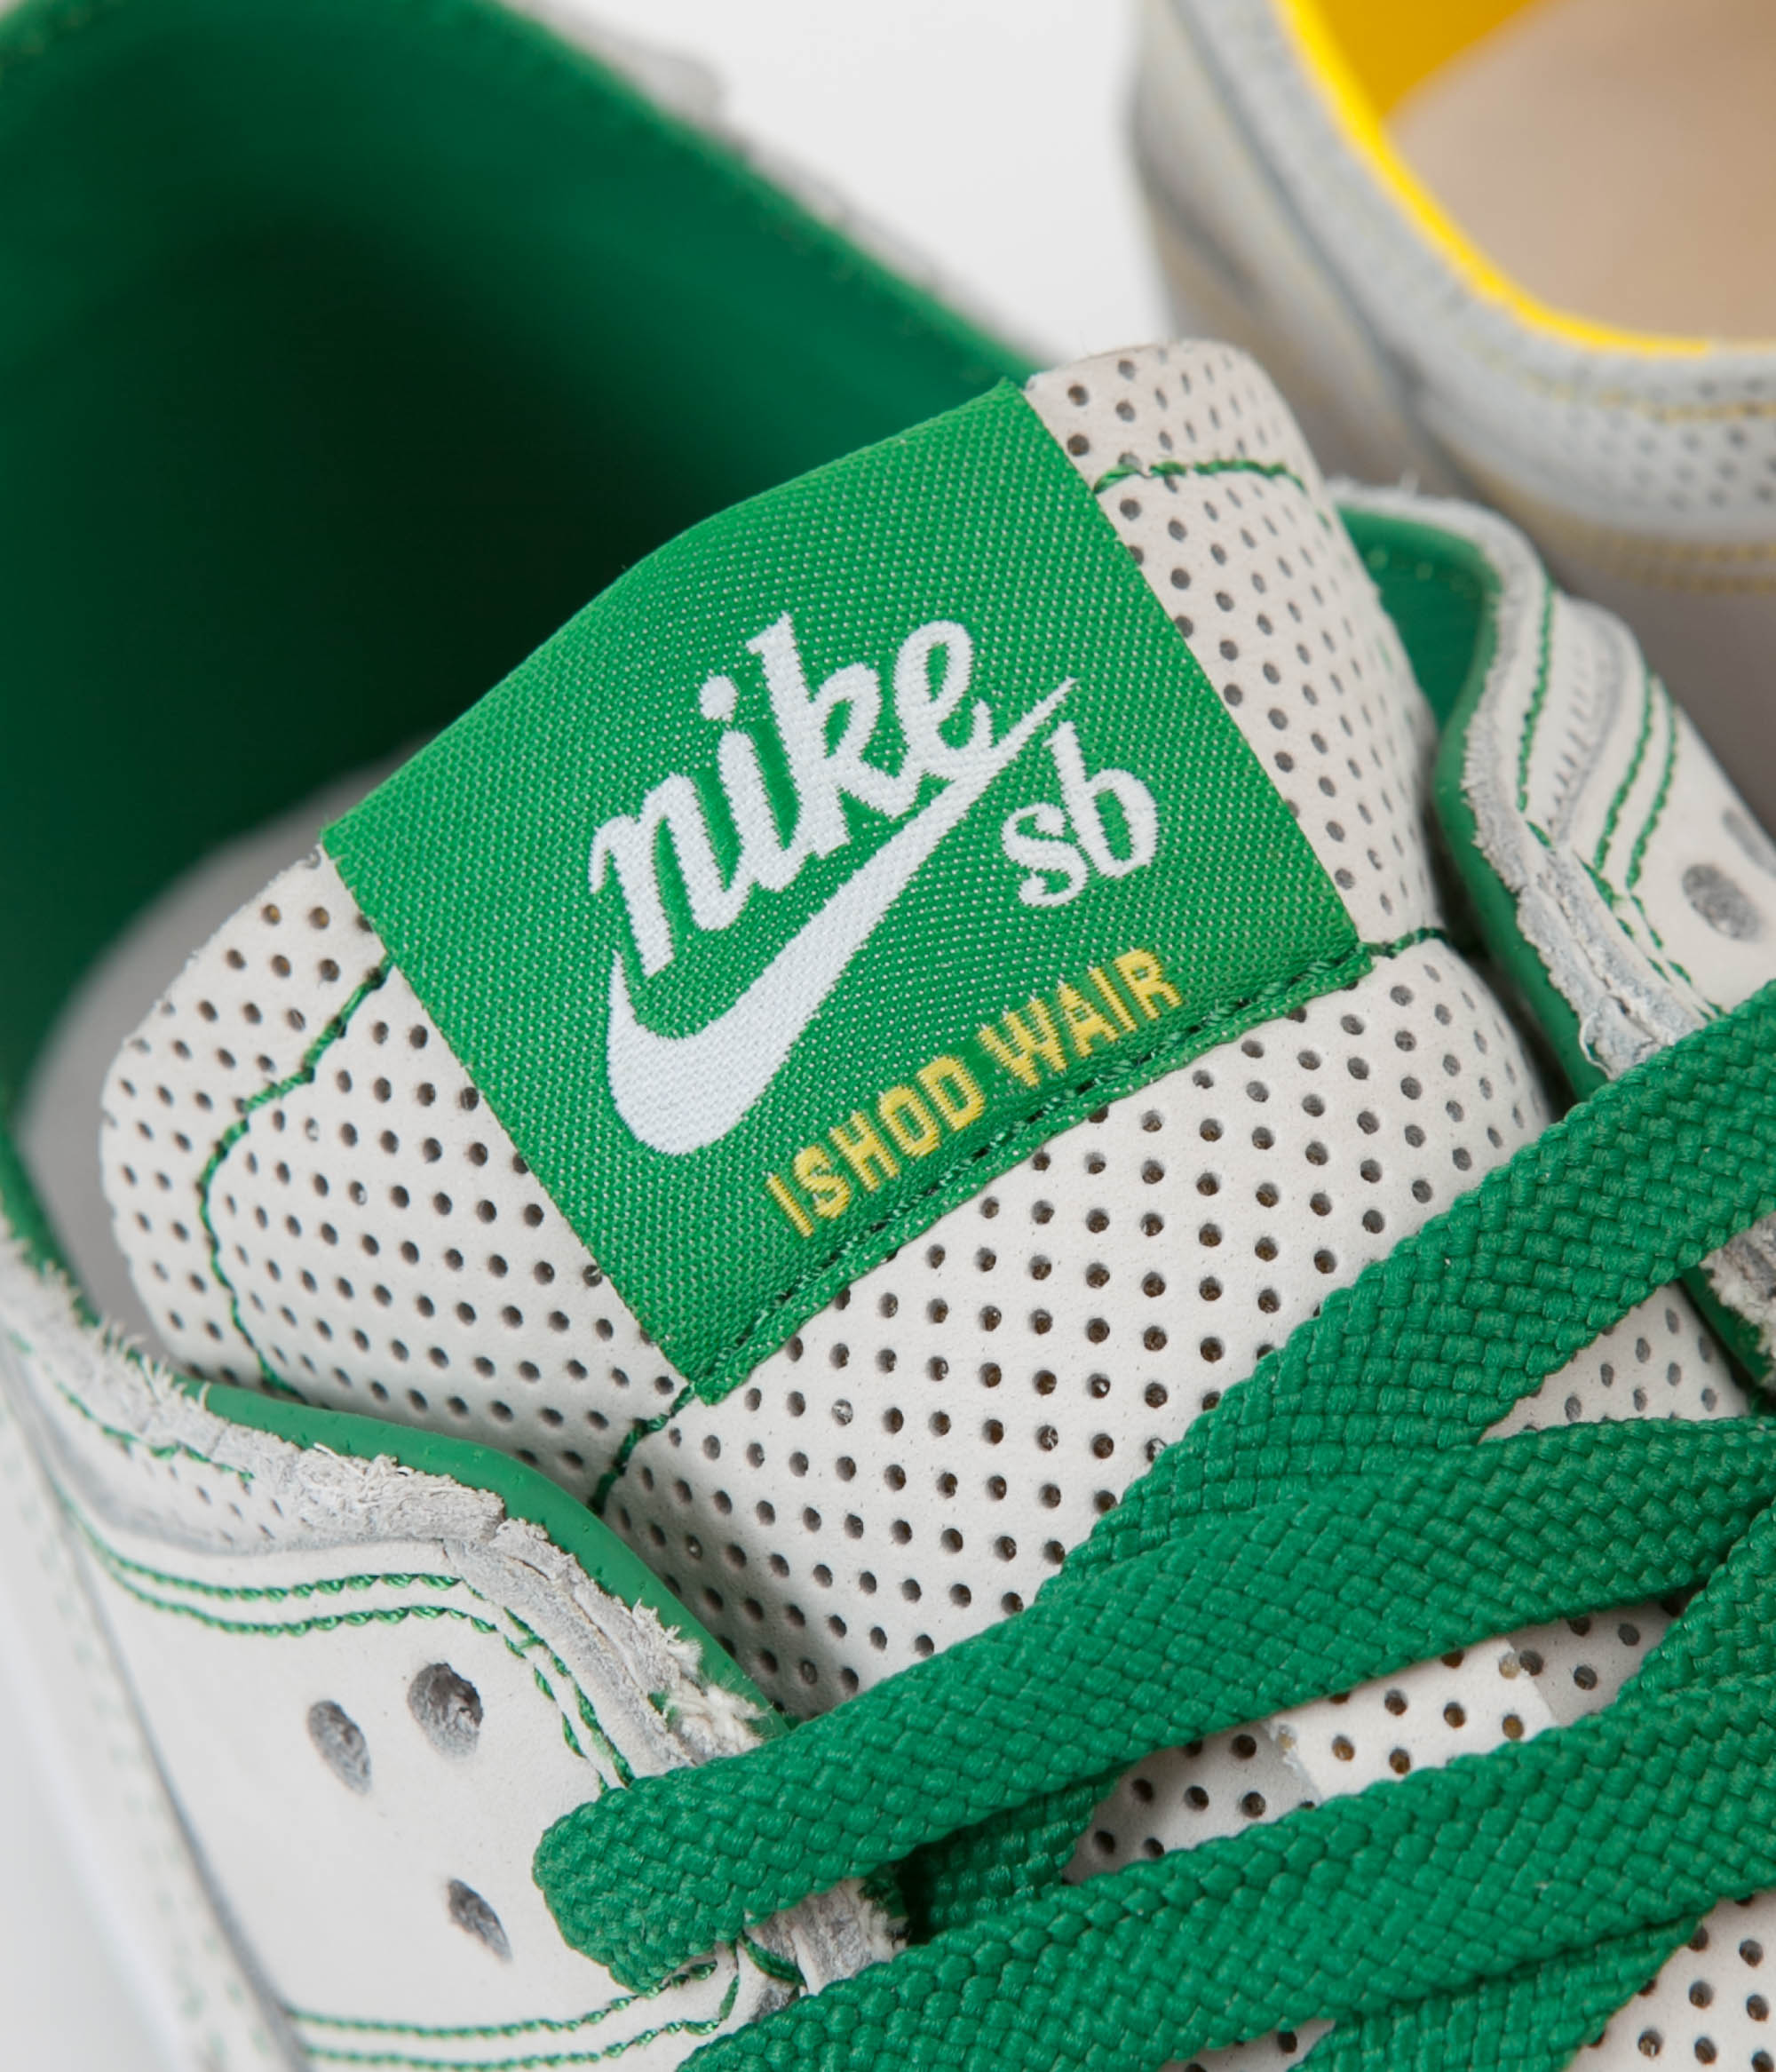 02b4da59760 ... Nike SB Dunk Low Pro Ishod Deconstructed Shoes - White   White - Aloe  Verde ...